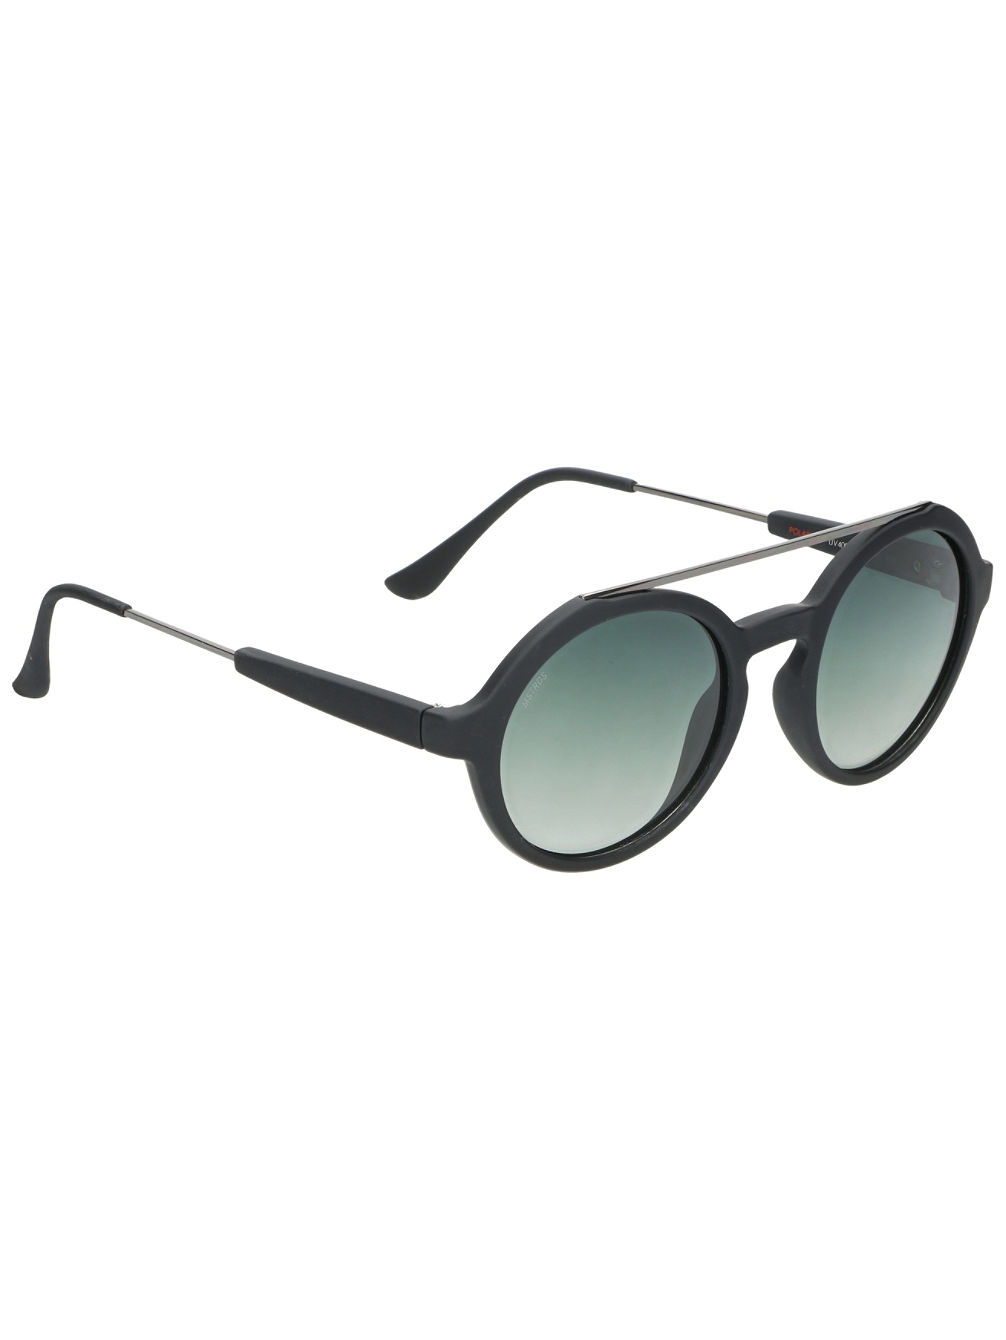 Retro Space Black Sonnenbrille